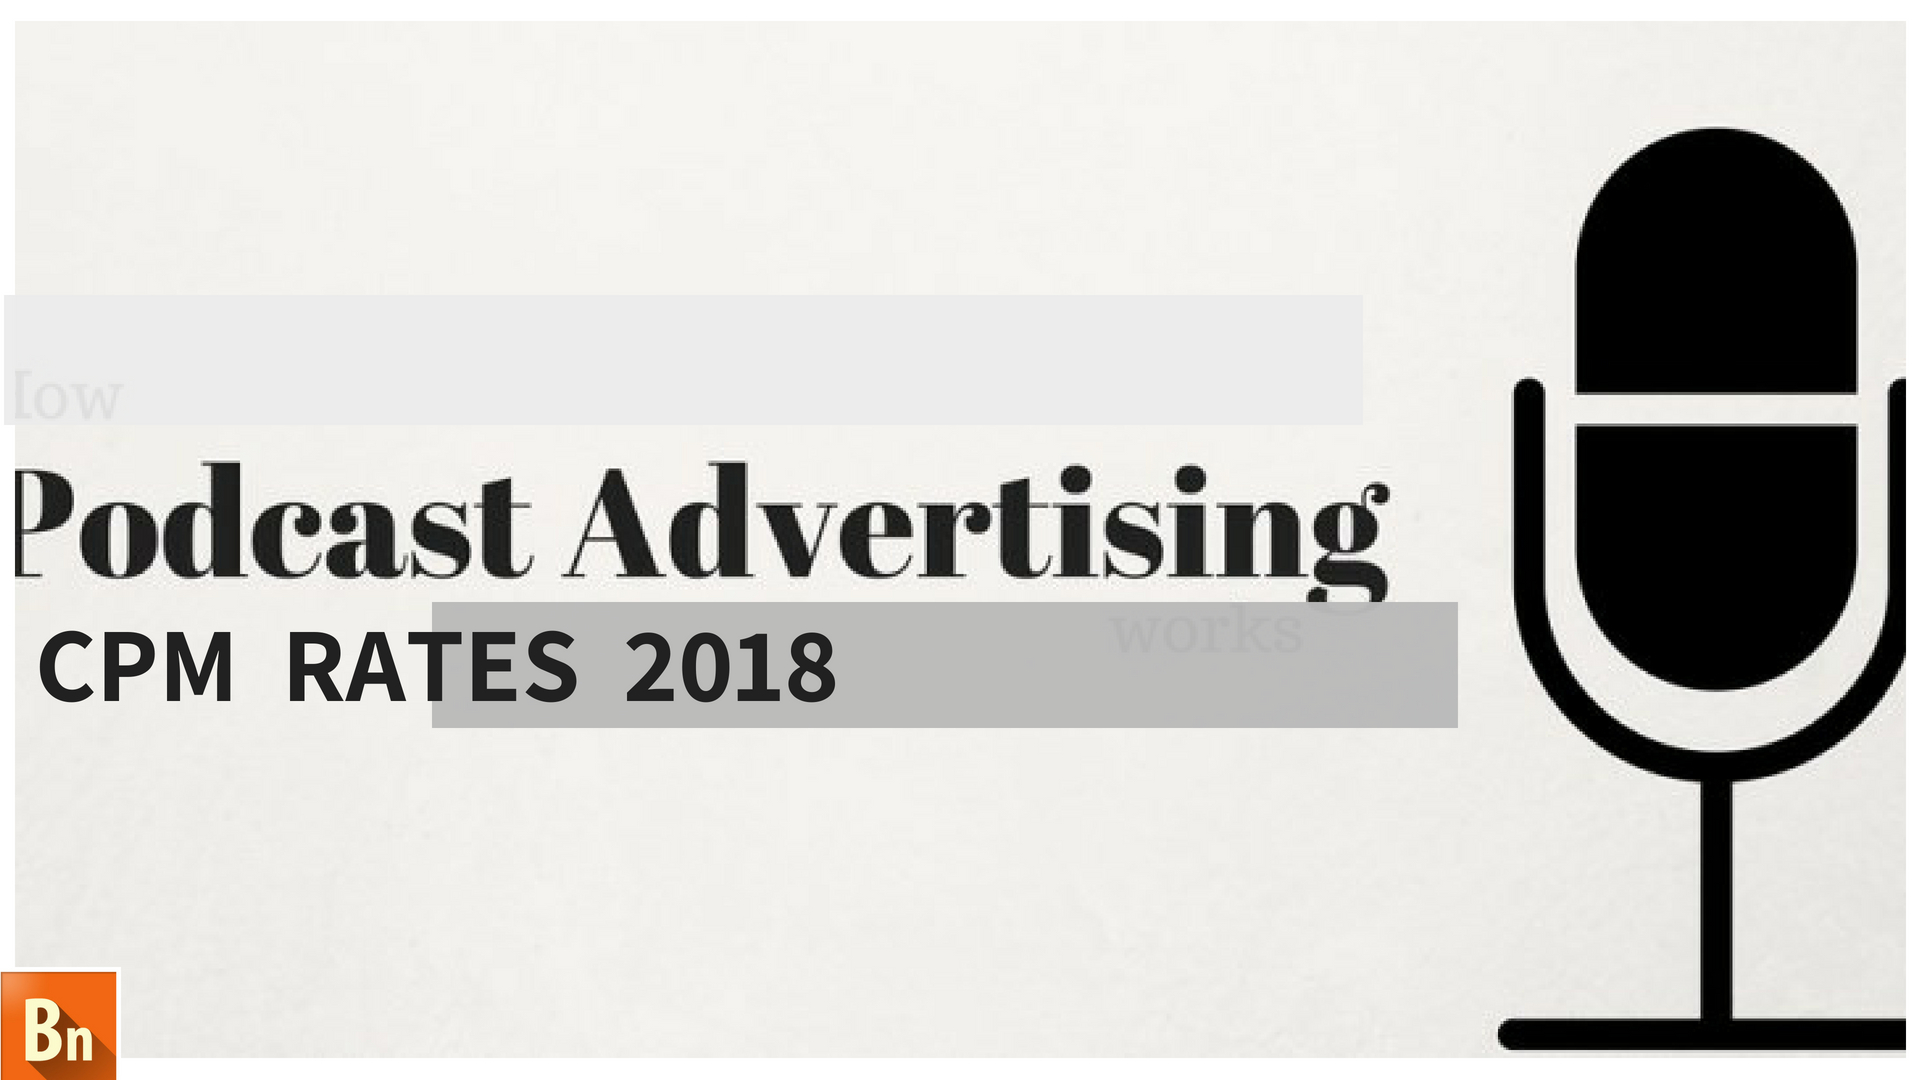 Podcast Advertising CPM Rates 2019